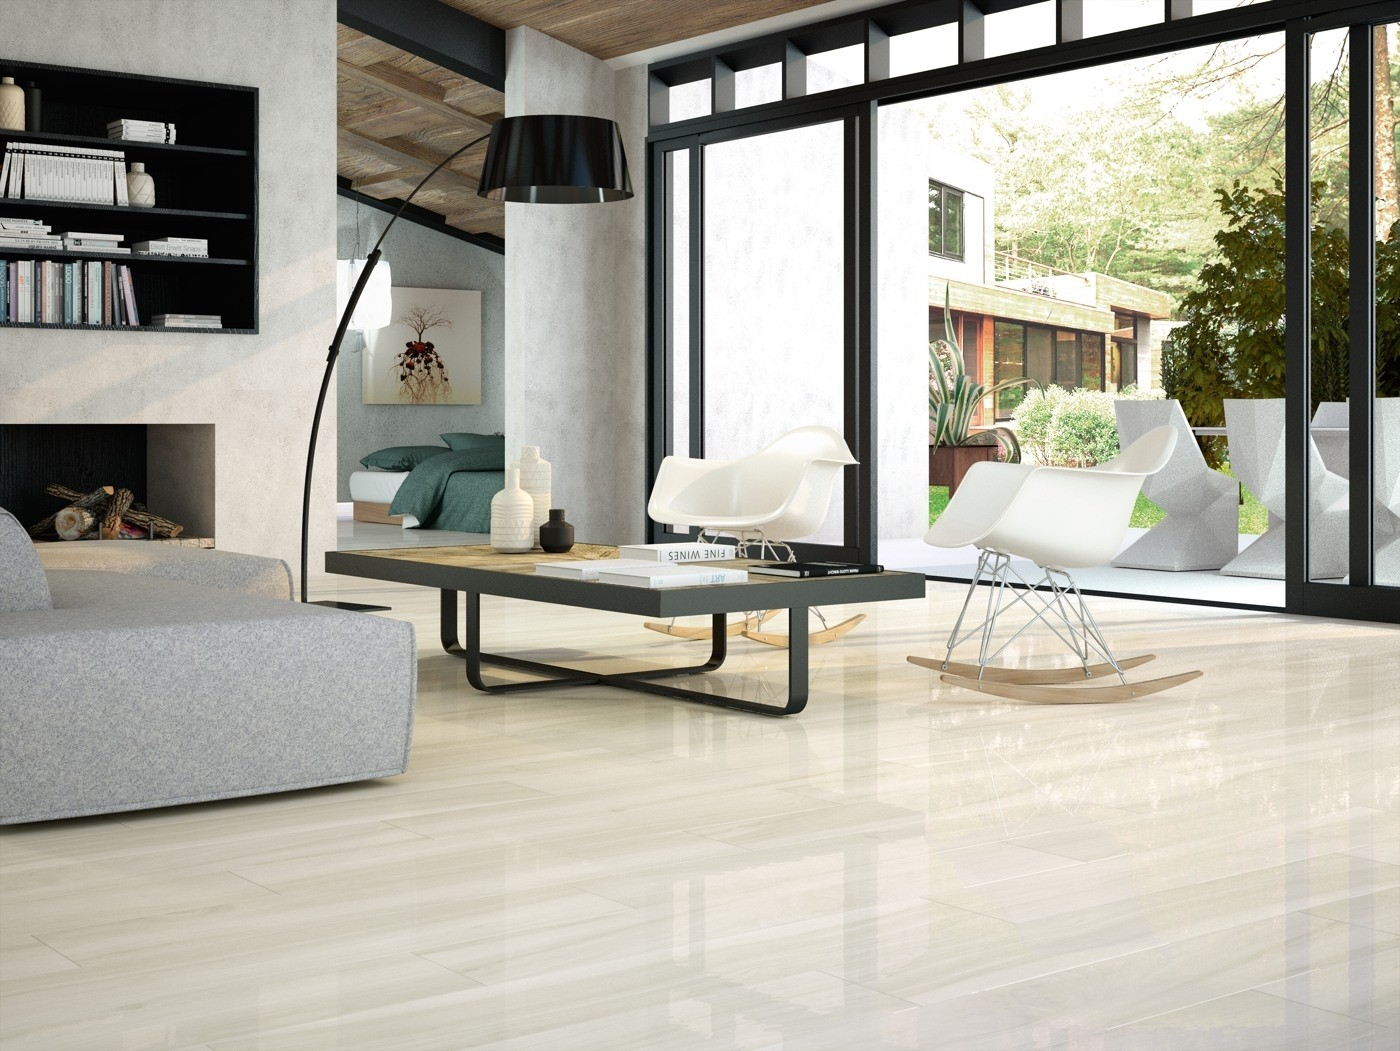 Wood Effect Porcelain Floor Tiles >> Time White Wood Effect Polished Porcelain 1200 X 200mm